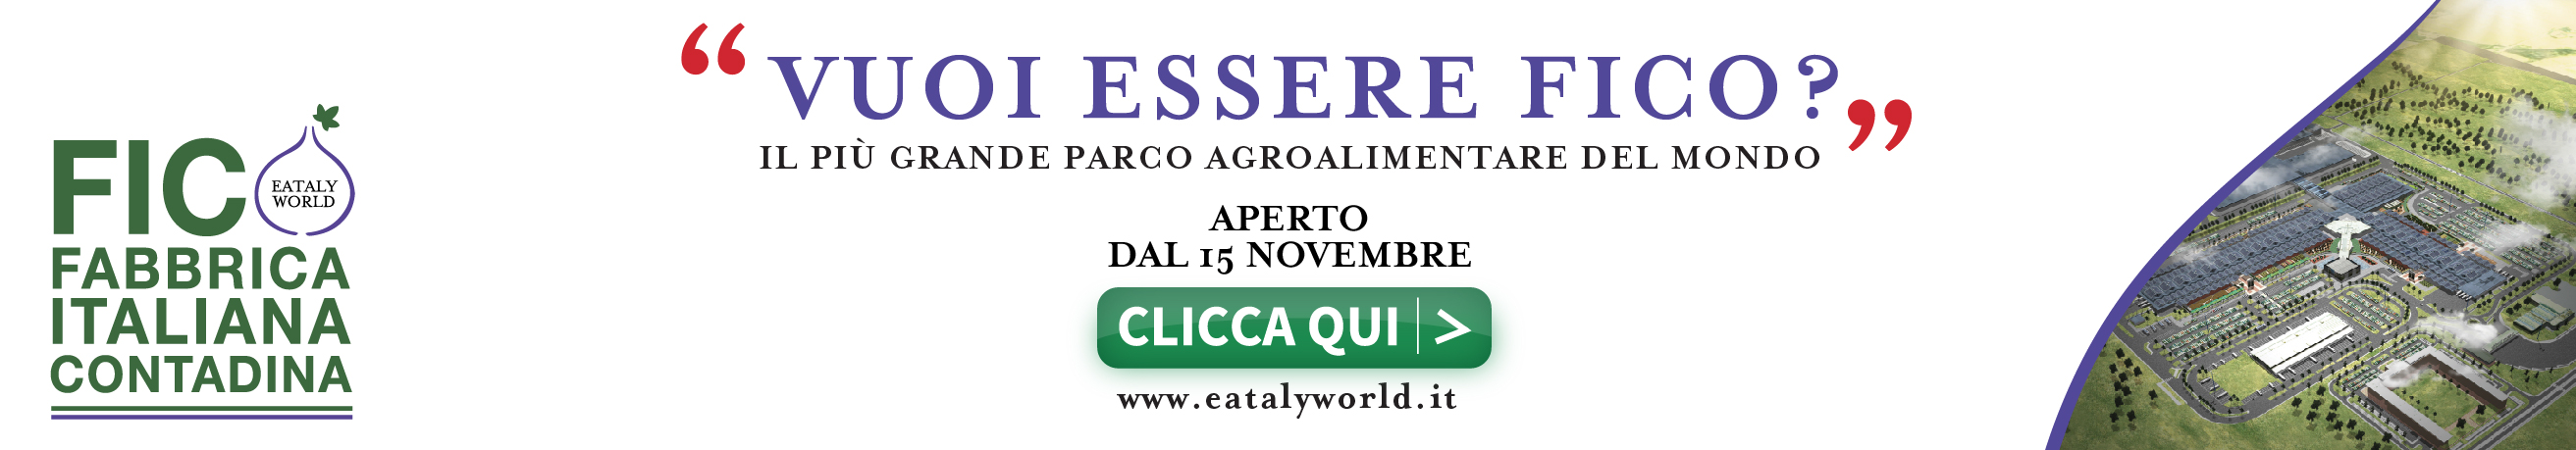 Banner Eataly 630x110new 01